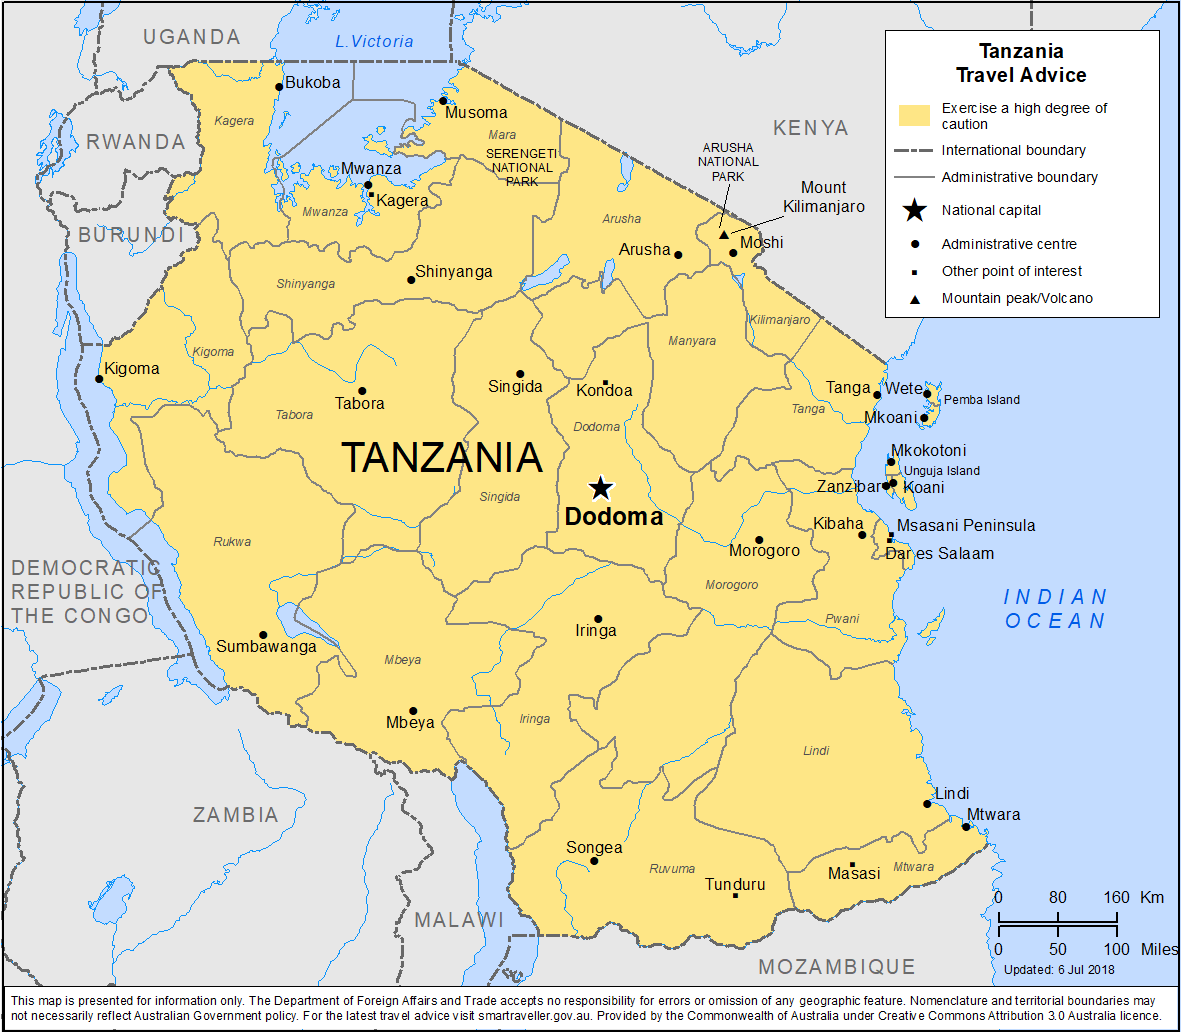 Tanzania-Travel-Insurance | AARDY.com